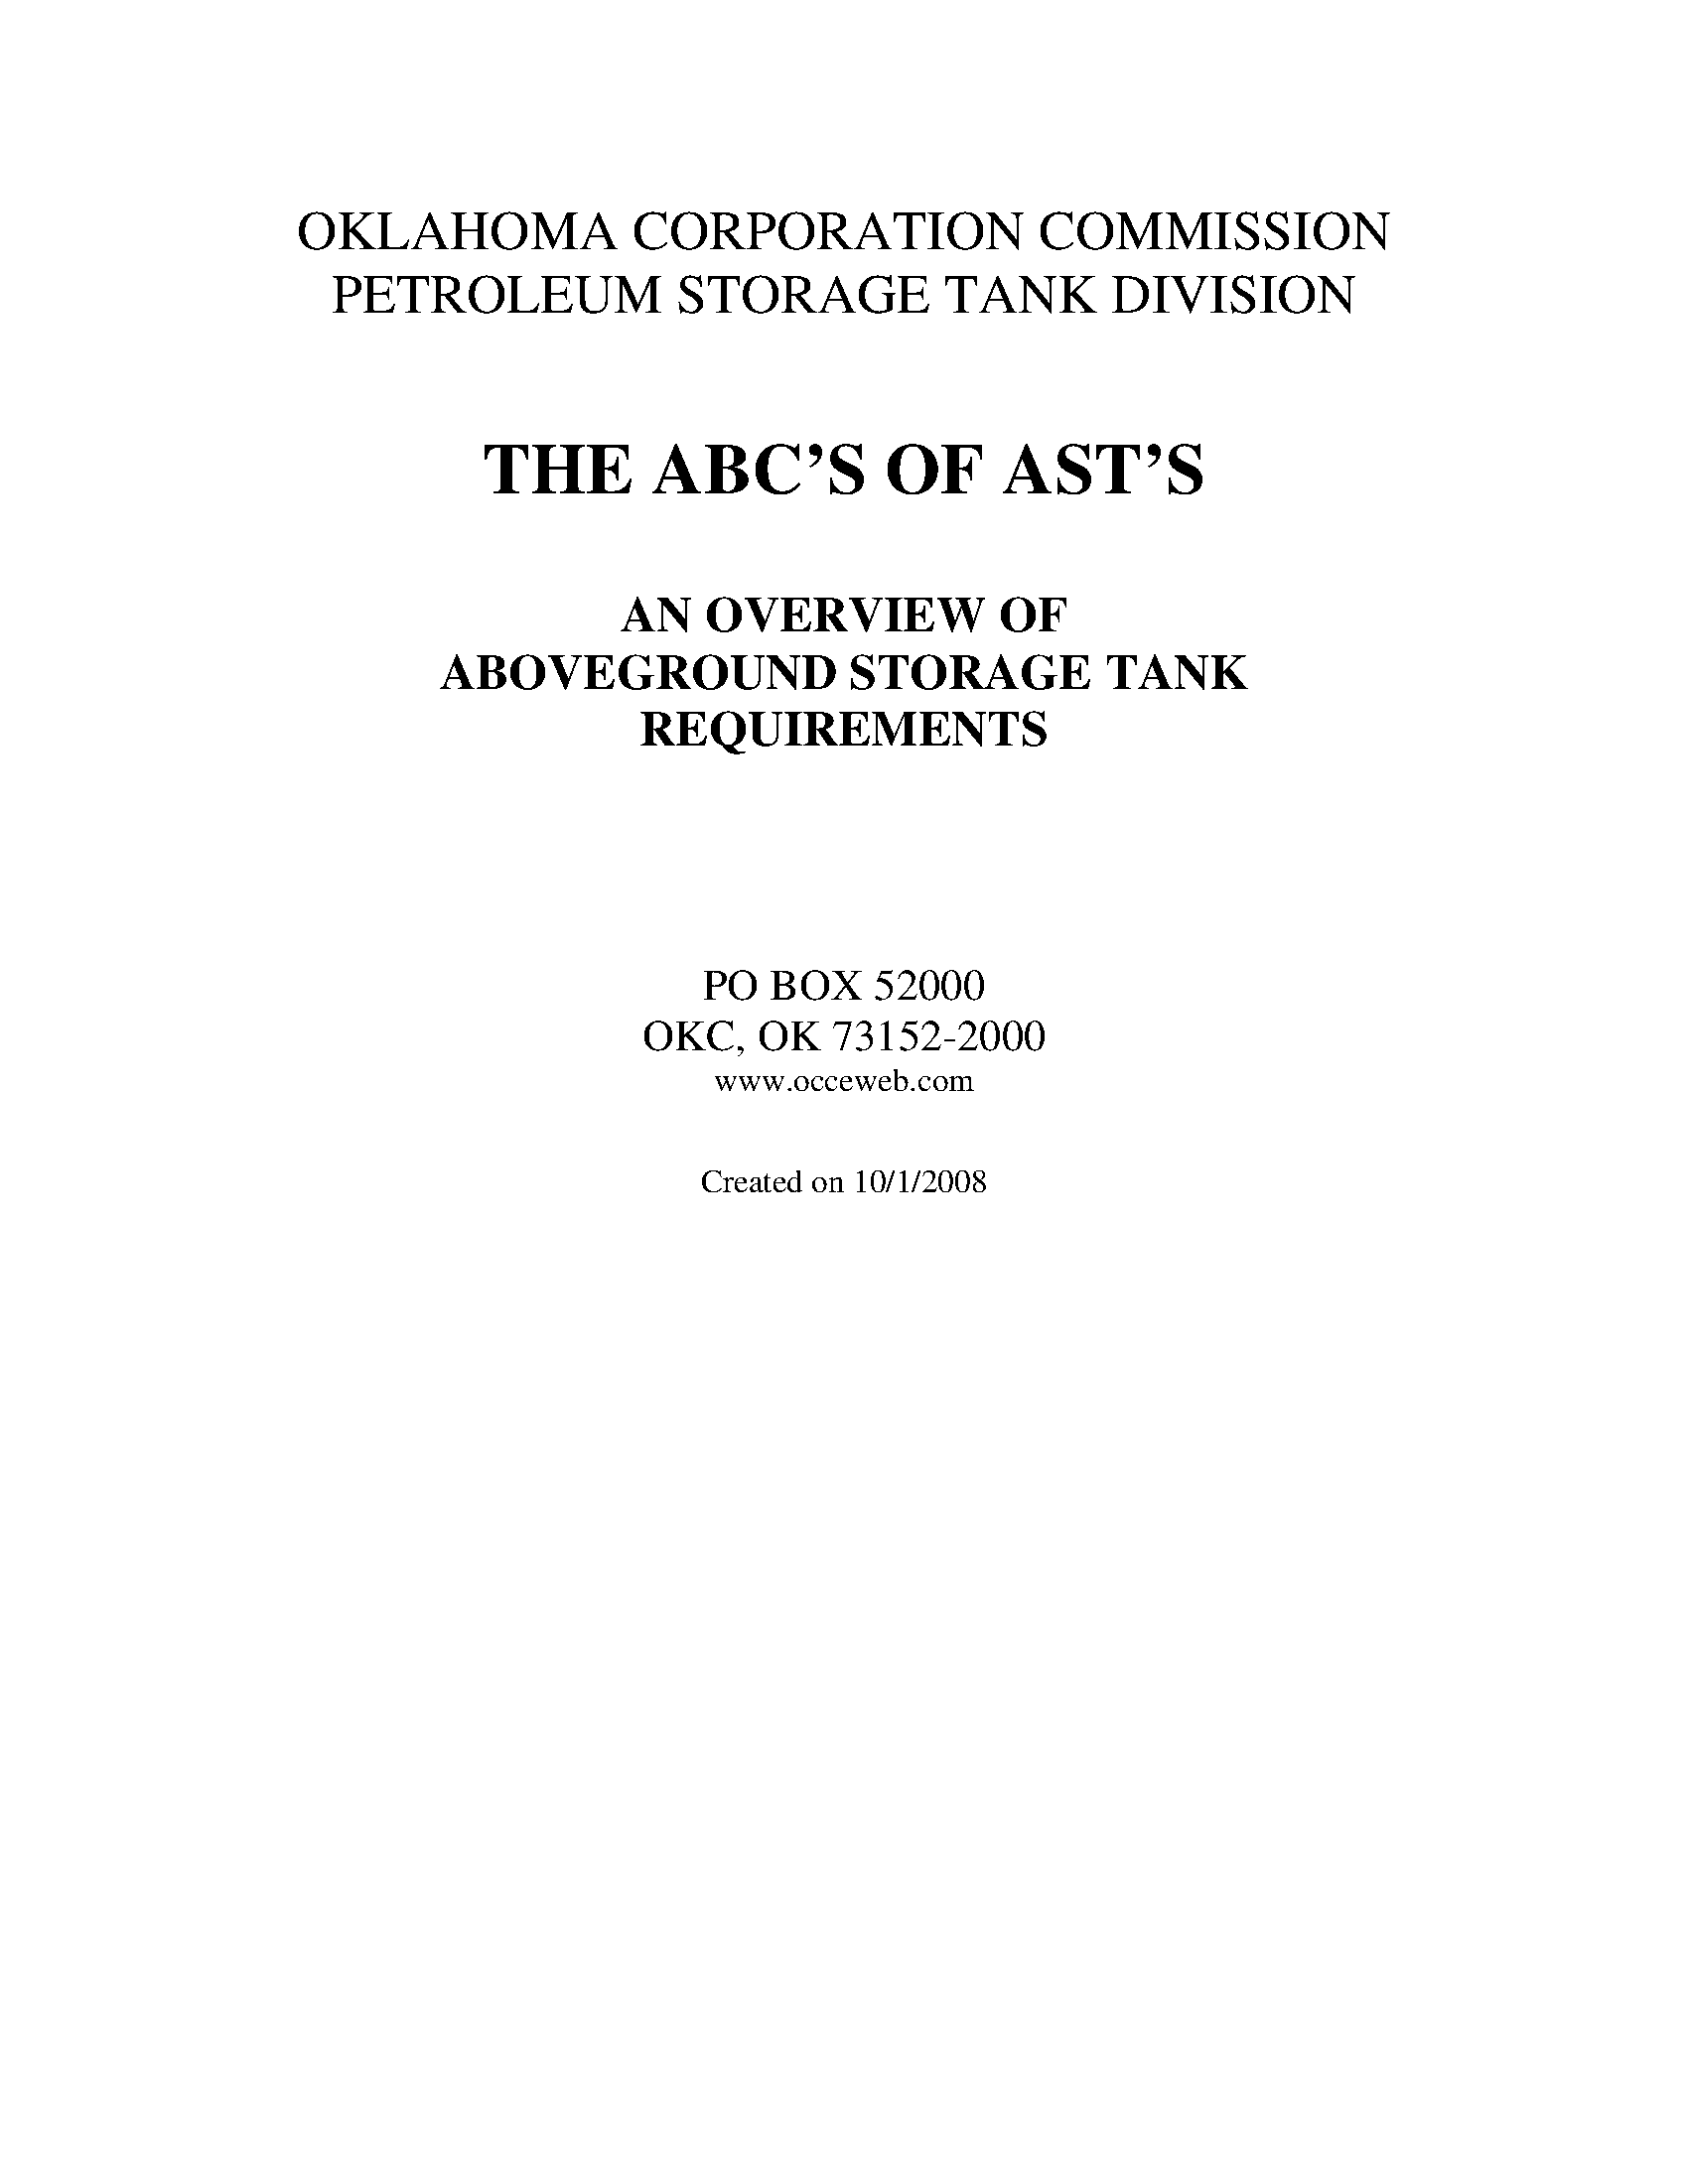 The ABC's of AST's : an overview of aboveground storage tank